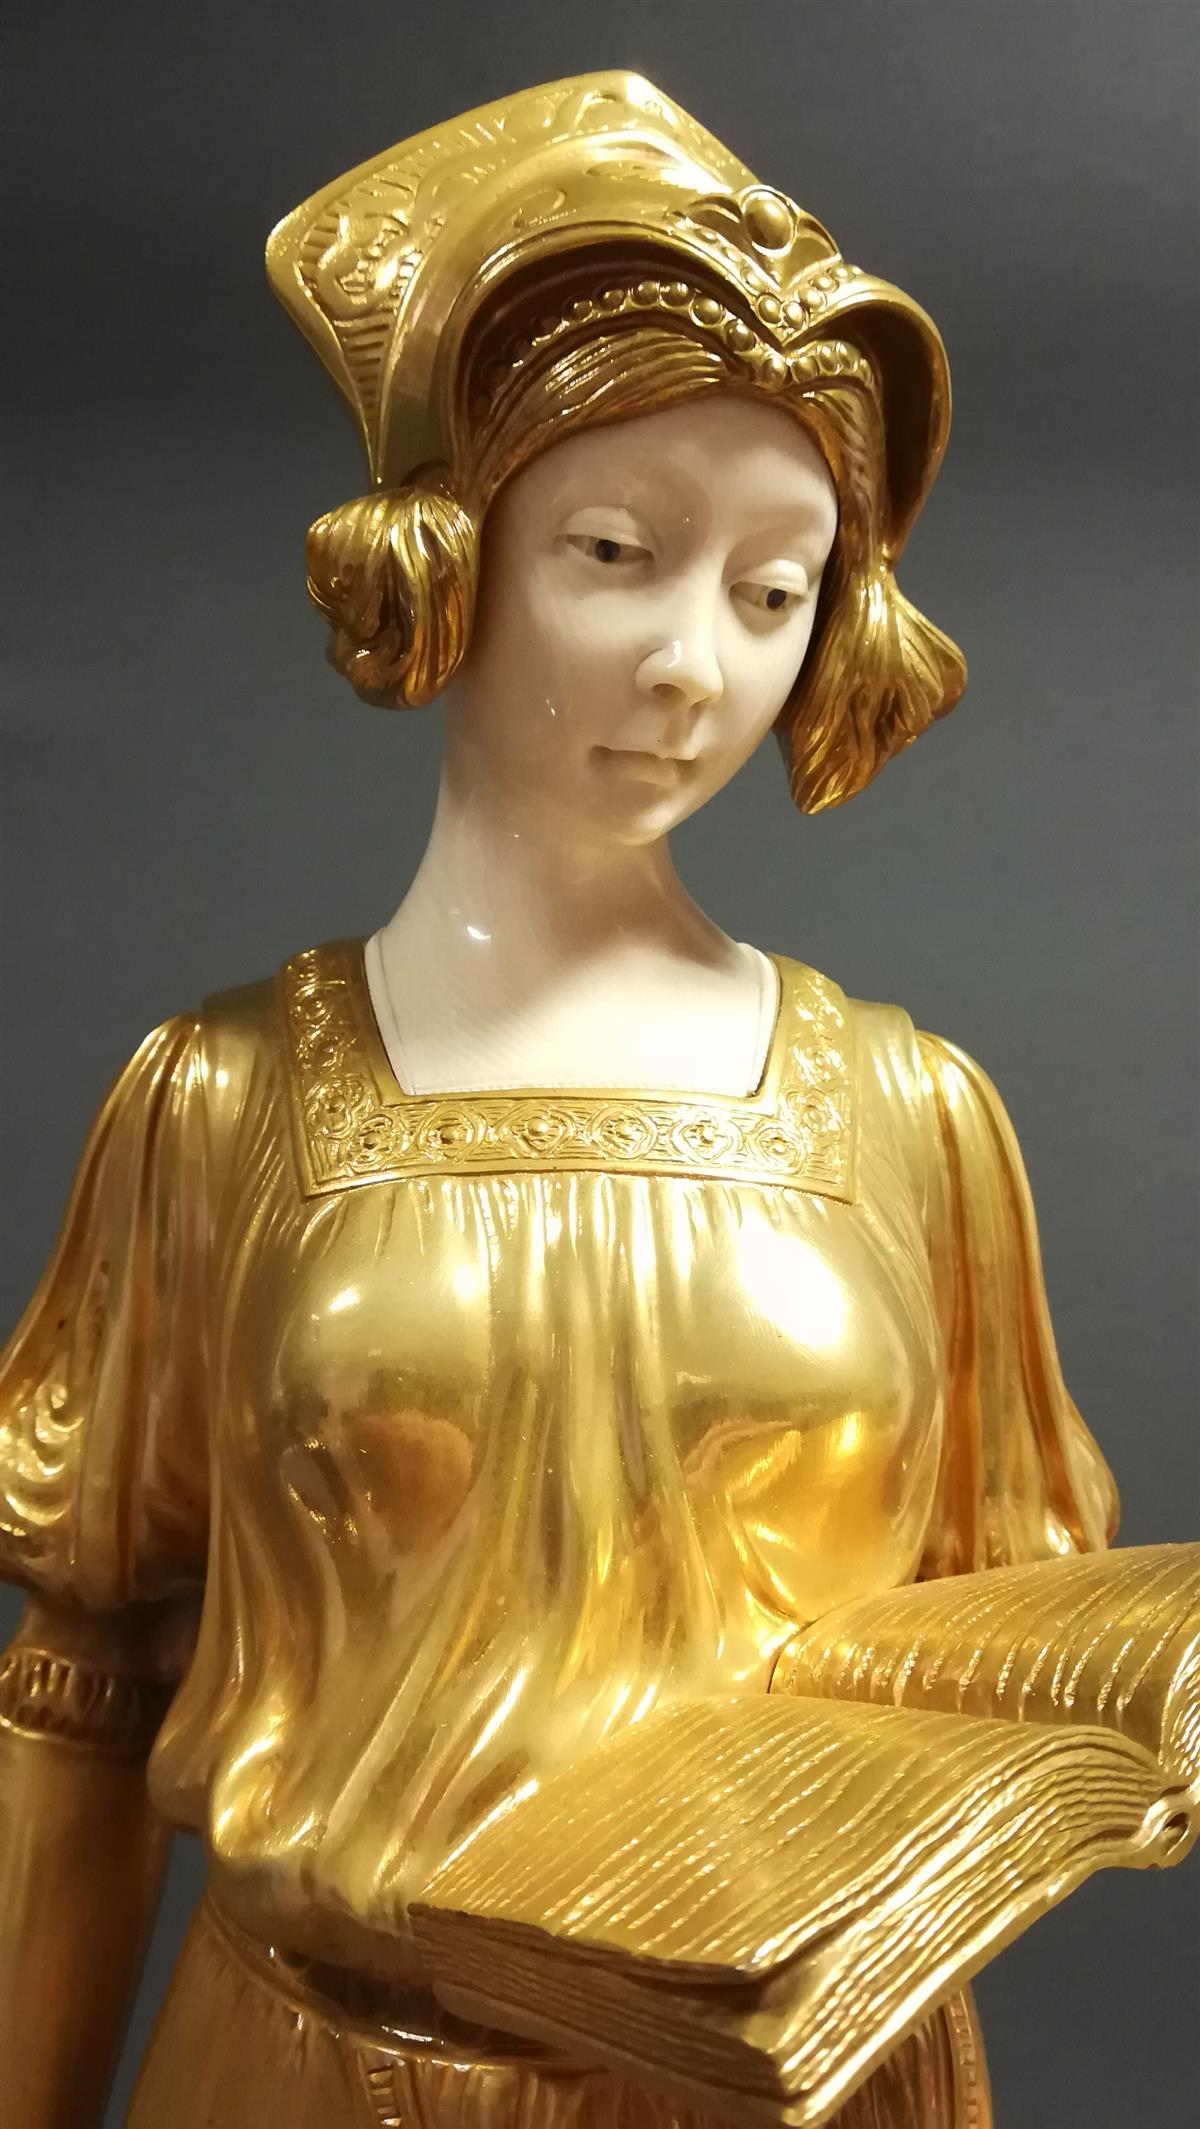 Medieval Lady, Chryselephantine sculpture in gilded bronze with ivory and staggered pedestal onyx